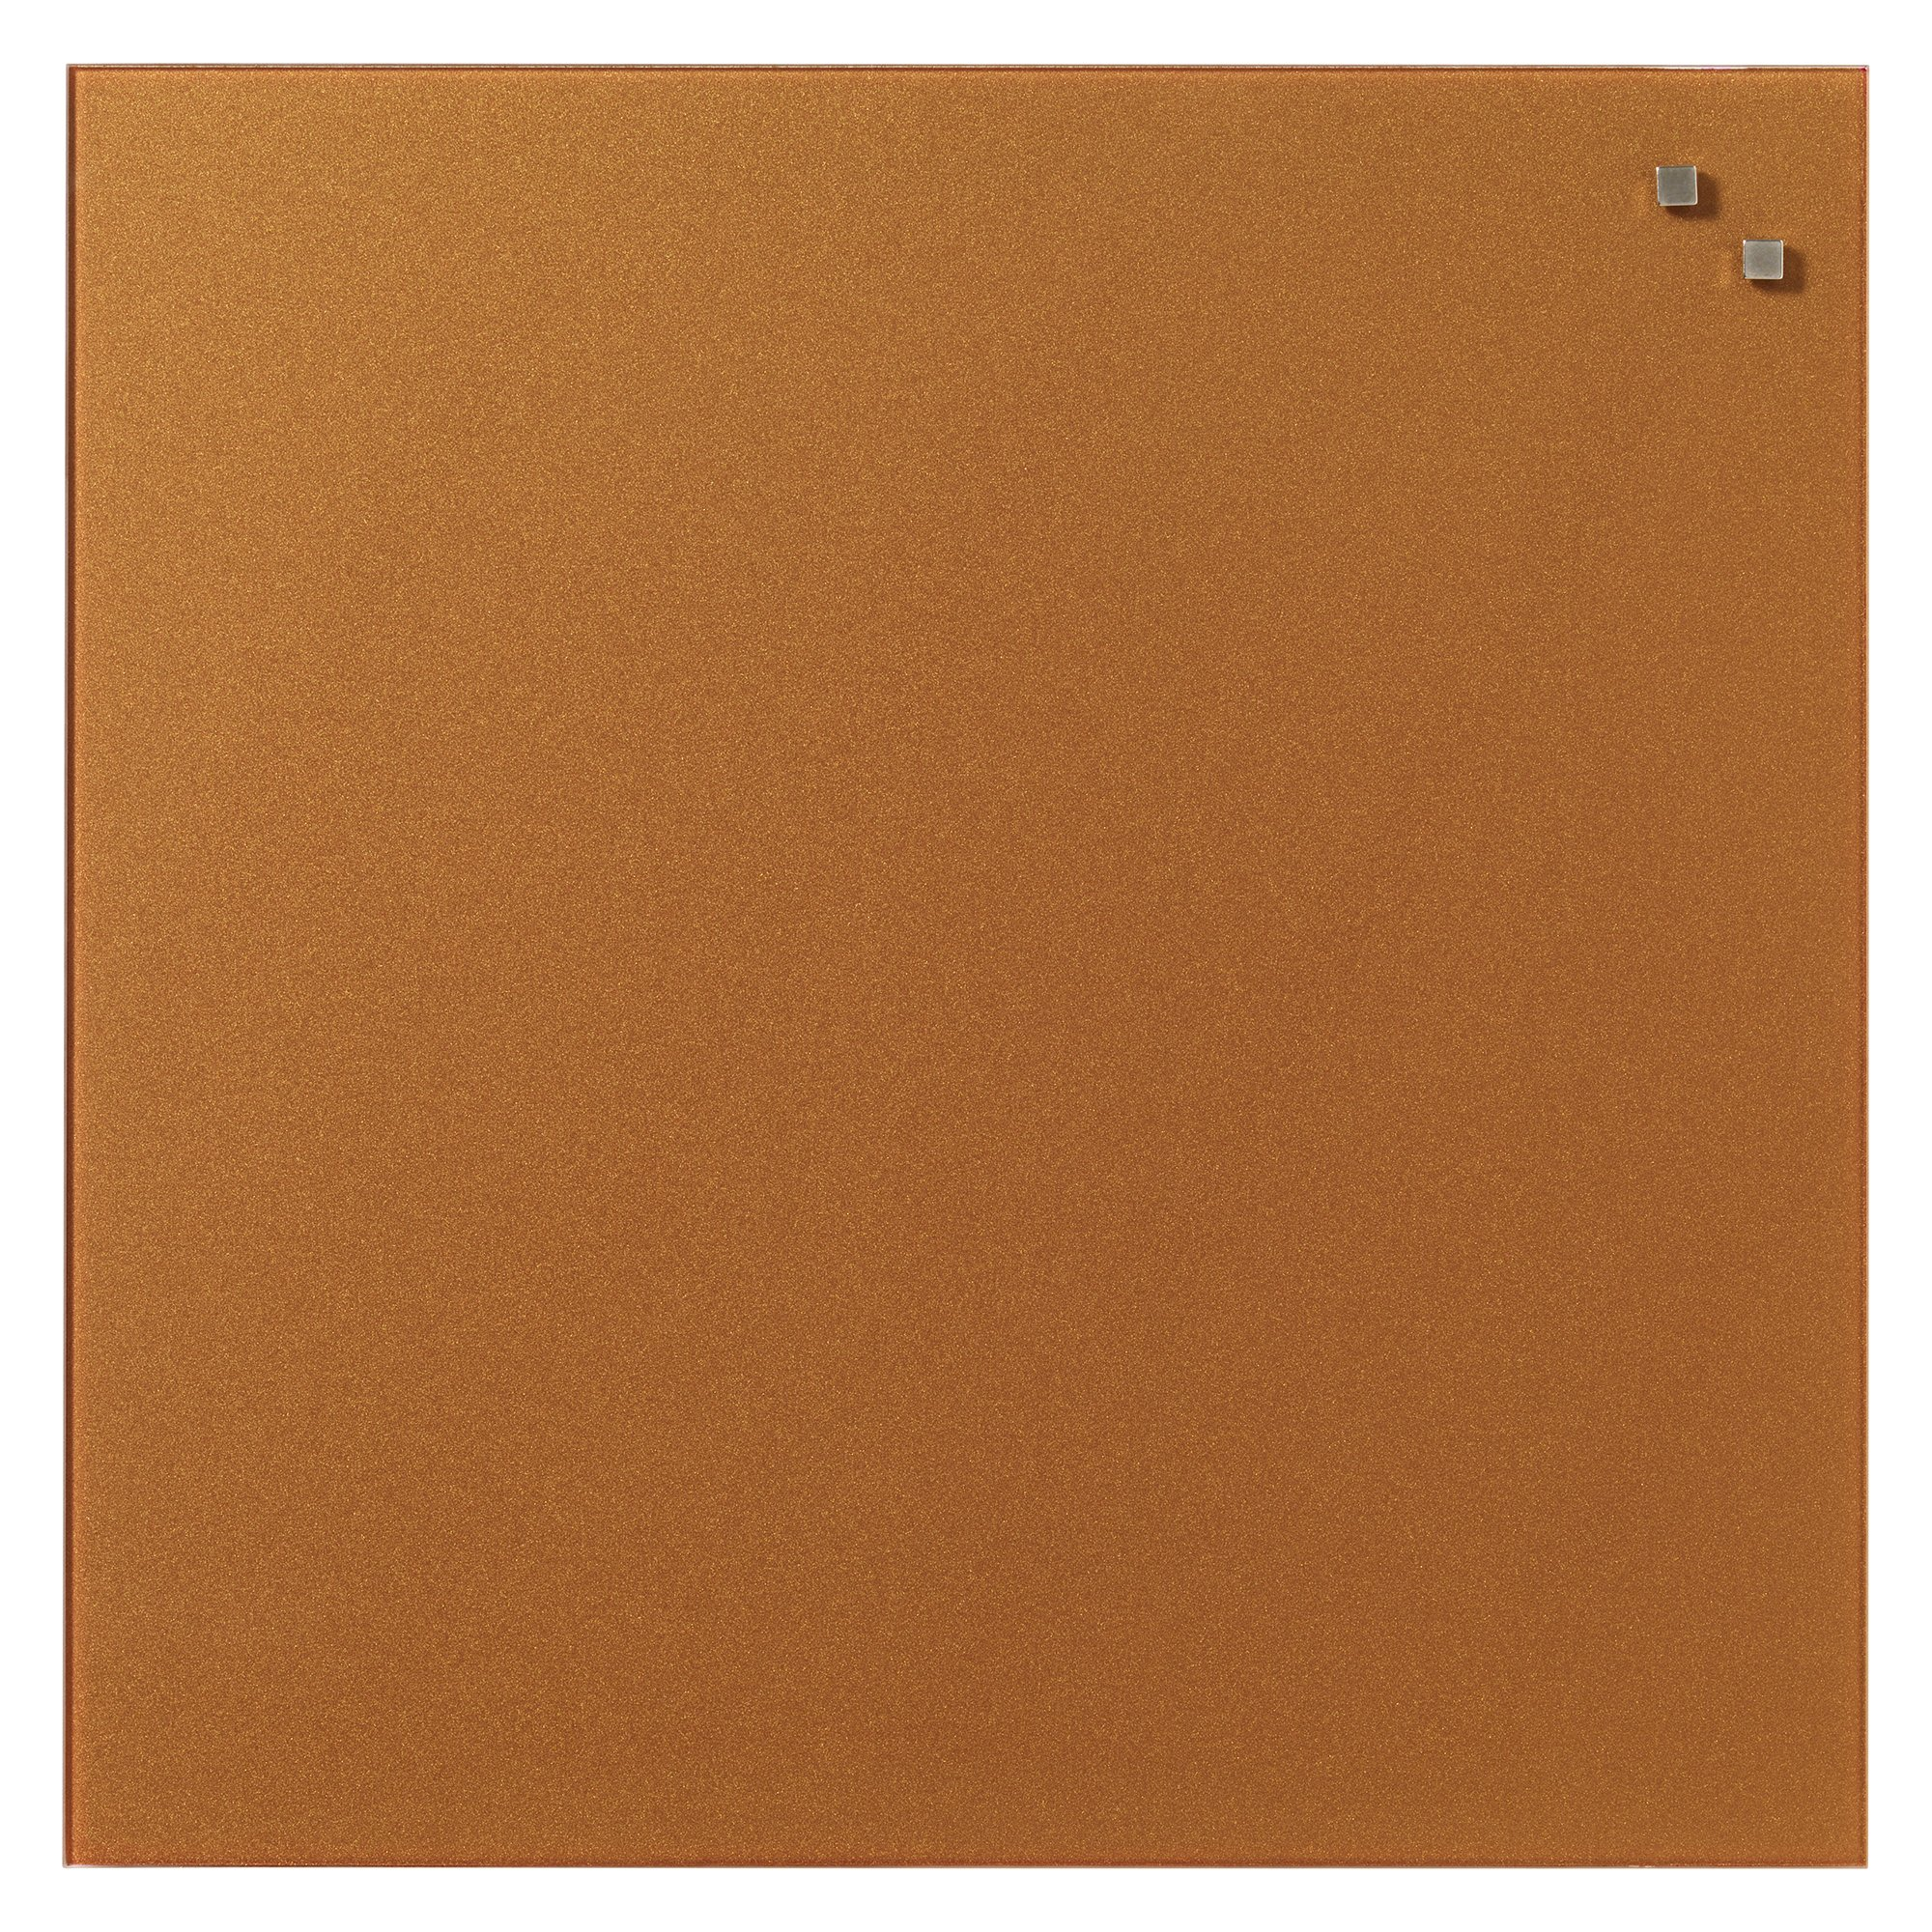 Naga 10783 Glass Board, Copper